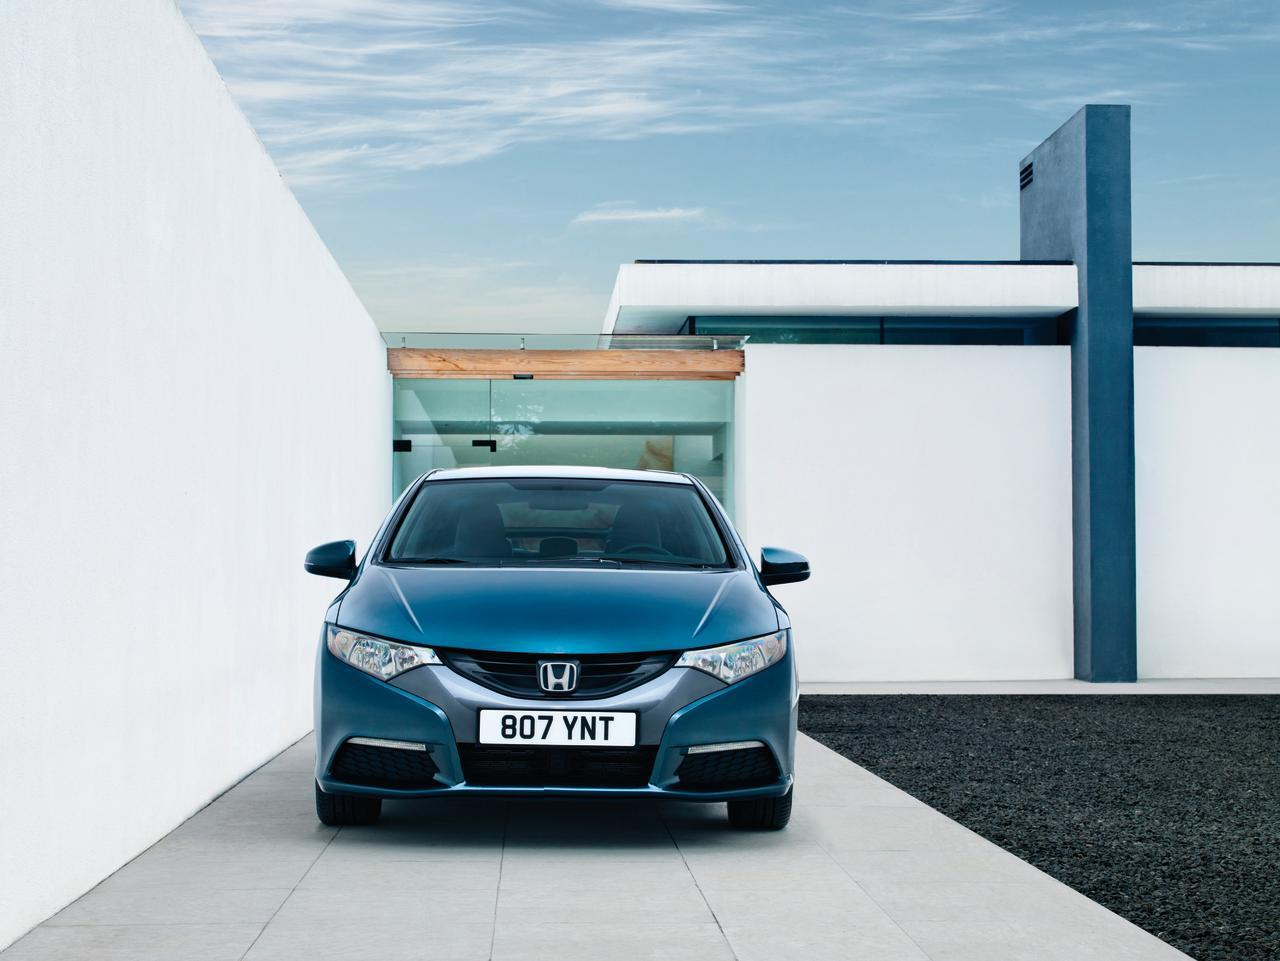 Foto de Honda Civic 2012 (14/153)